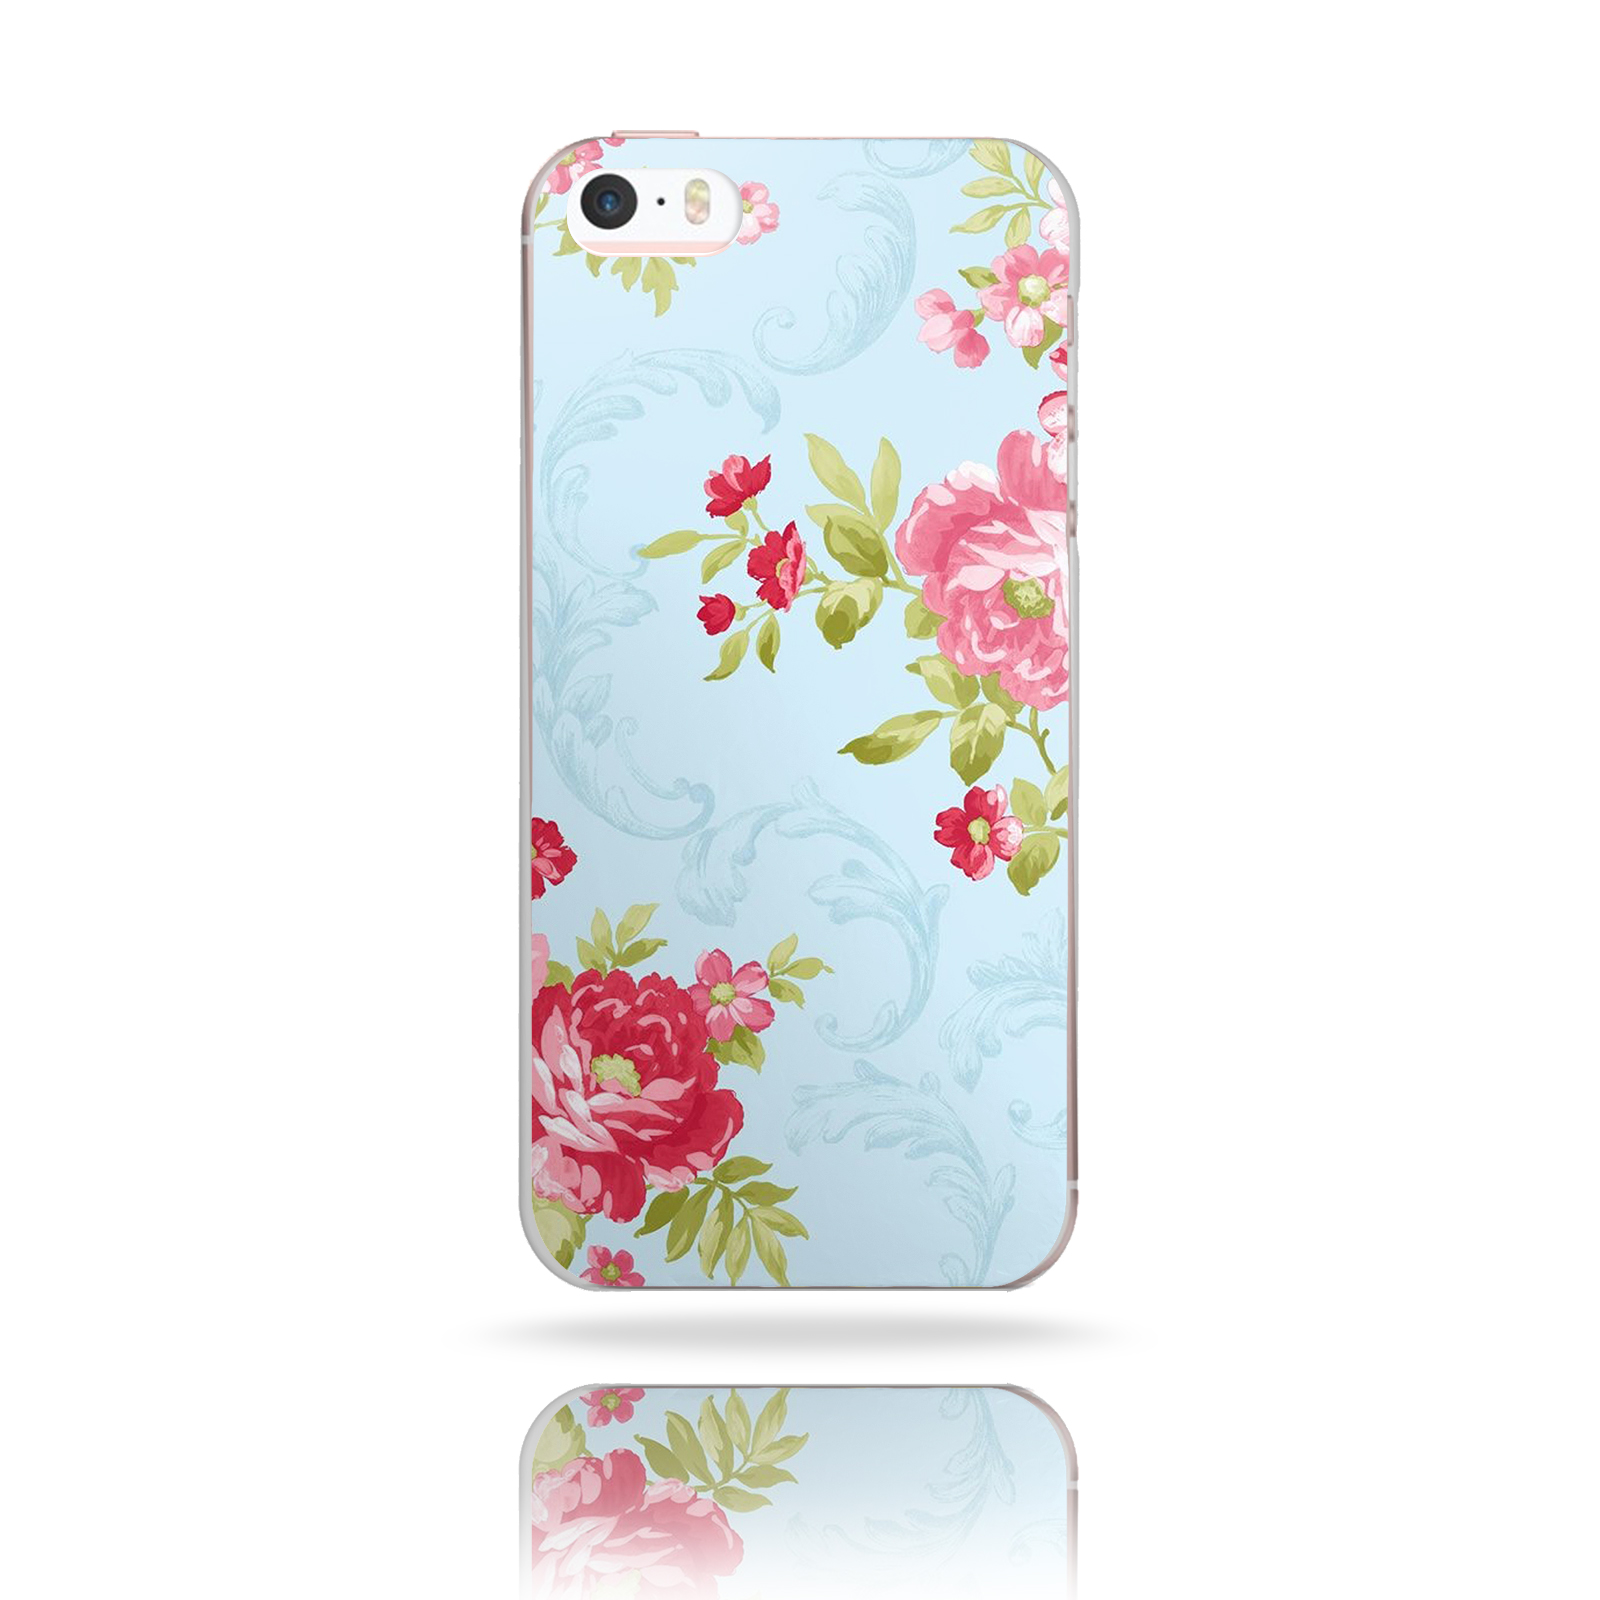 BG0092 SHABBY CHIC BLUE WITH PINK FLOWERS PRINT